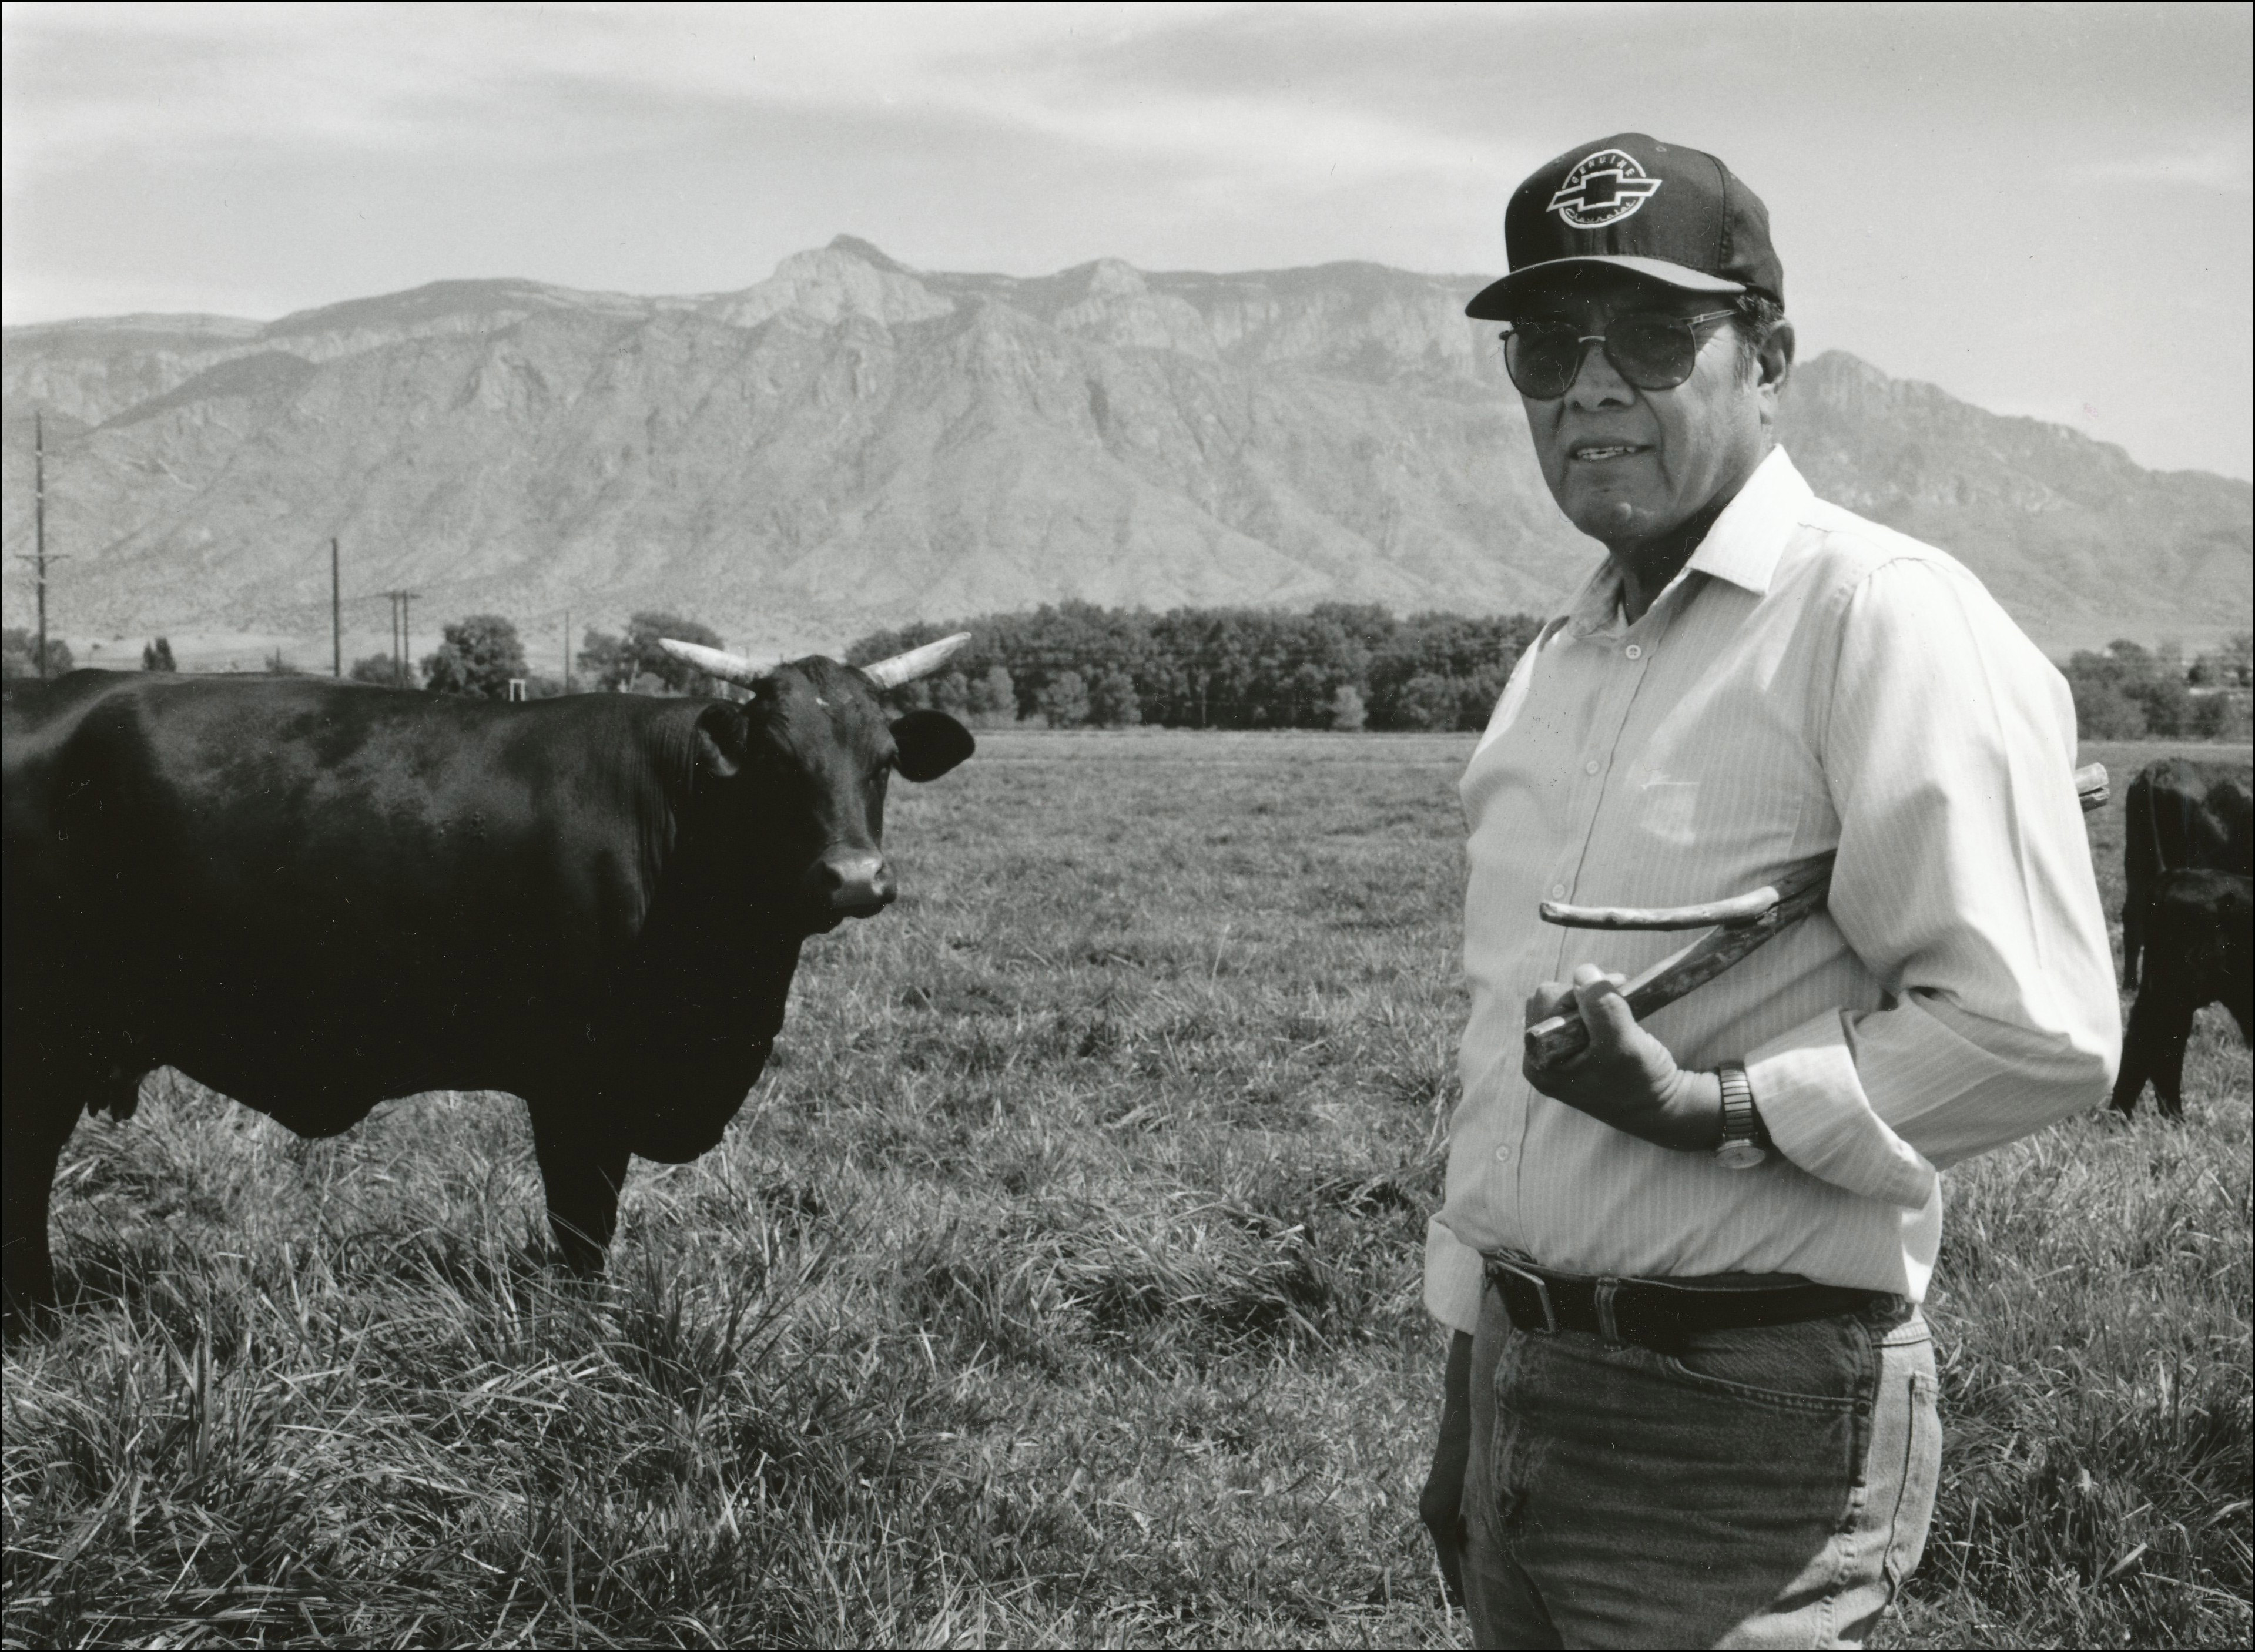 Rancher in baseball cap standing in pasture holding a stick with a cow with horns in behind and to the left of him